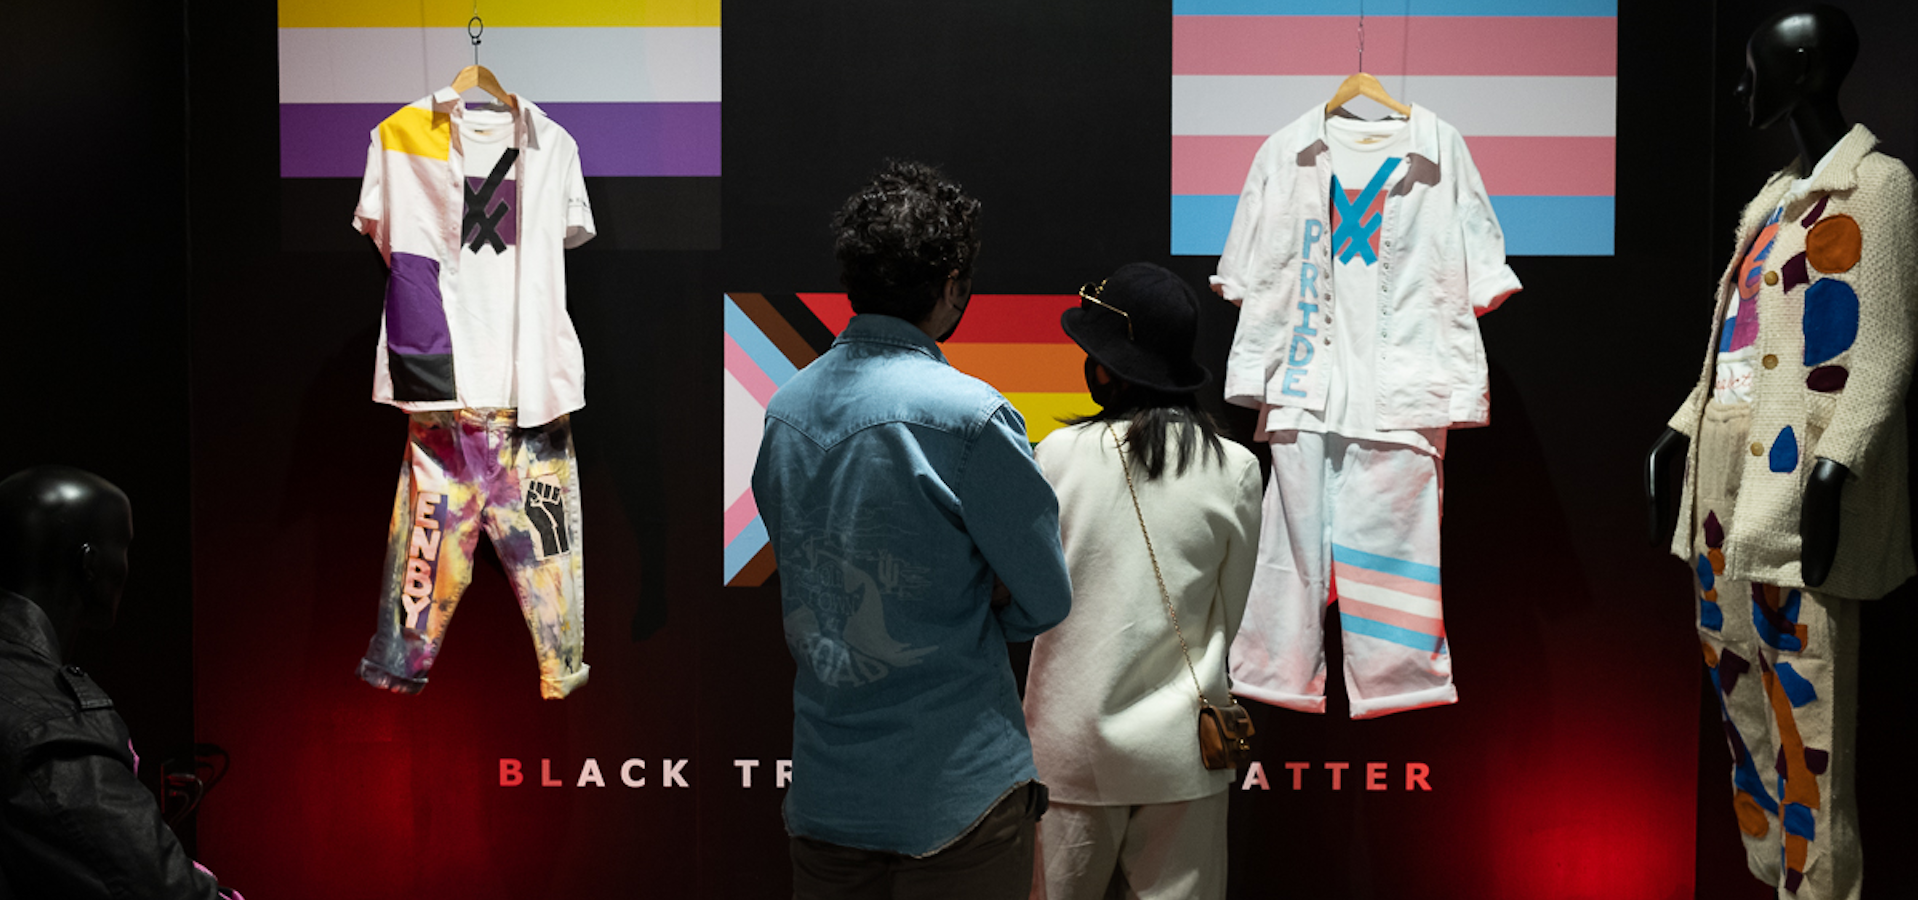 exhibition photo of outfits hanging in front of two people with their backs to the camera and multi-colored flags on the back wall